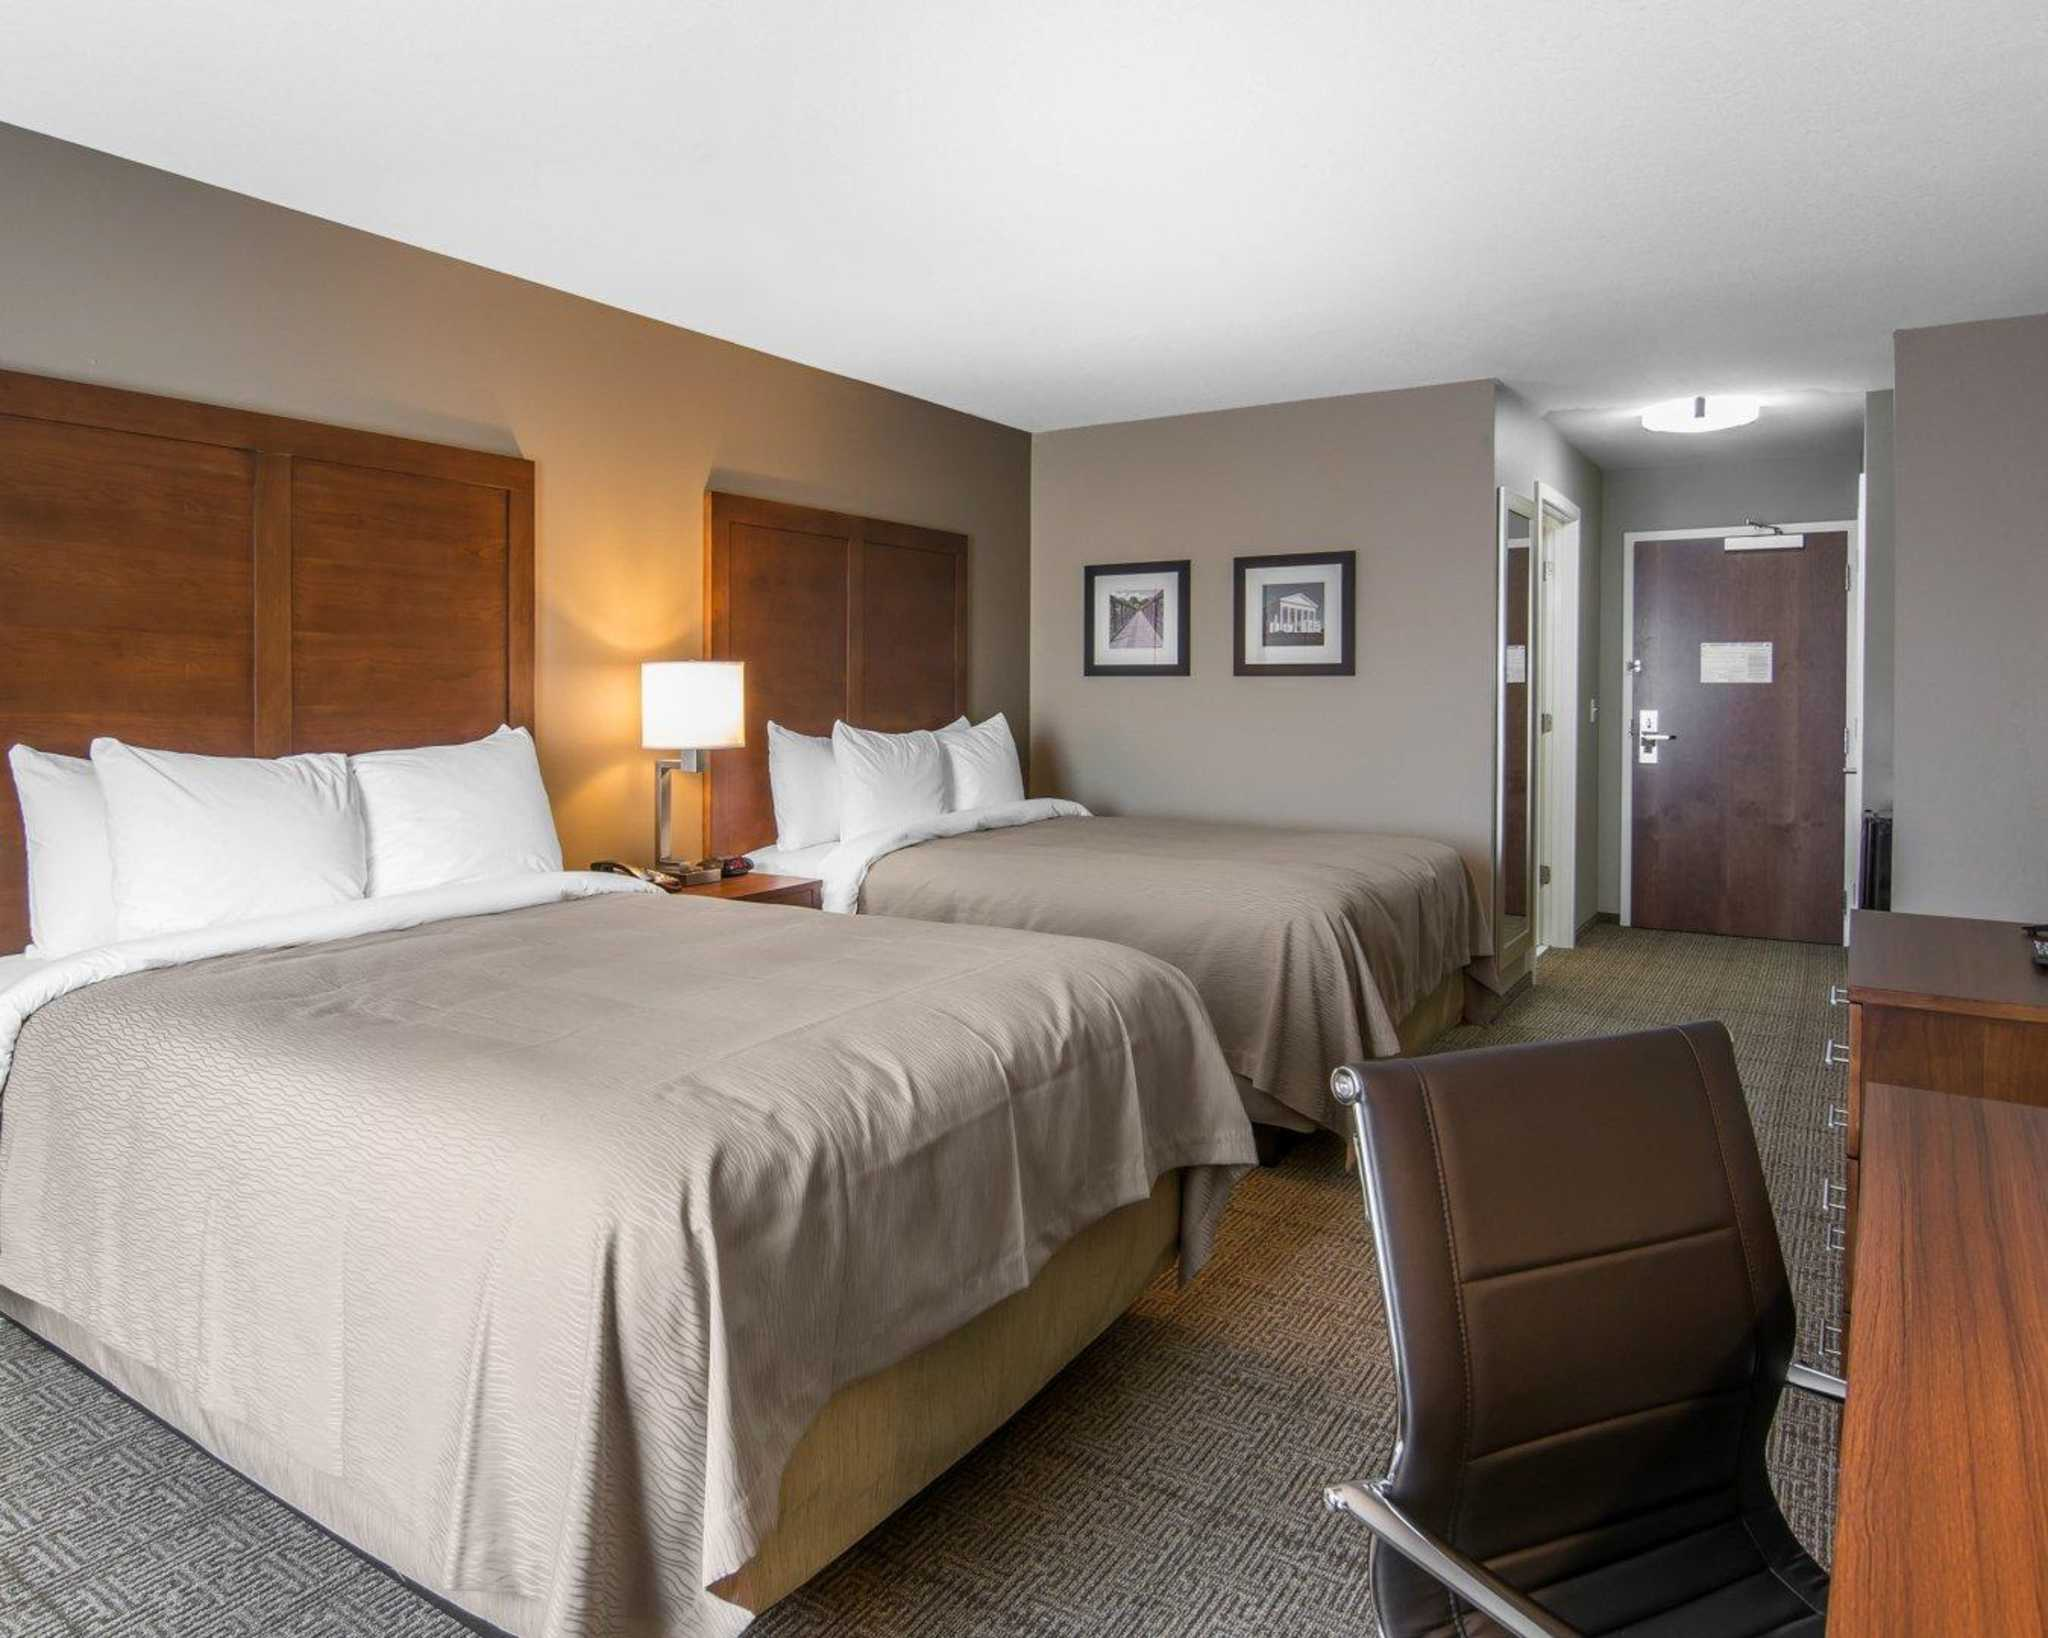 Comfort Inn South Chesterfield - Colonial Heights image 11